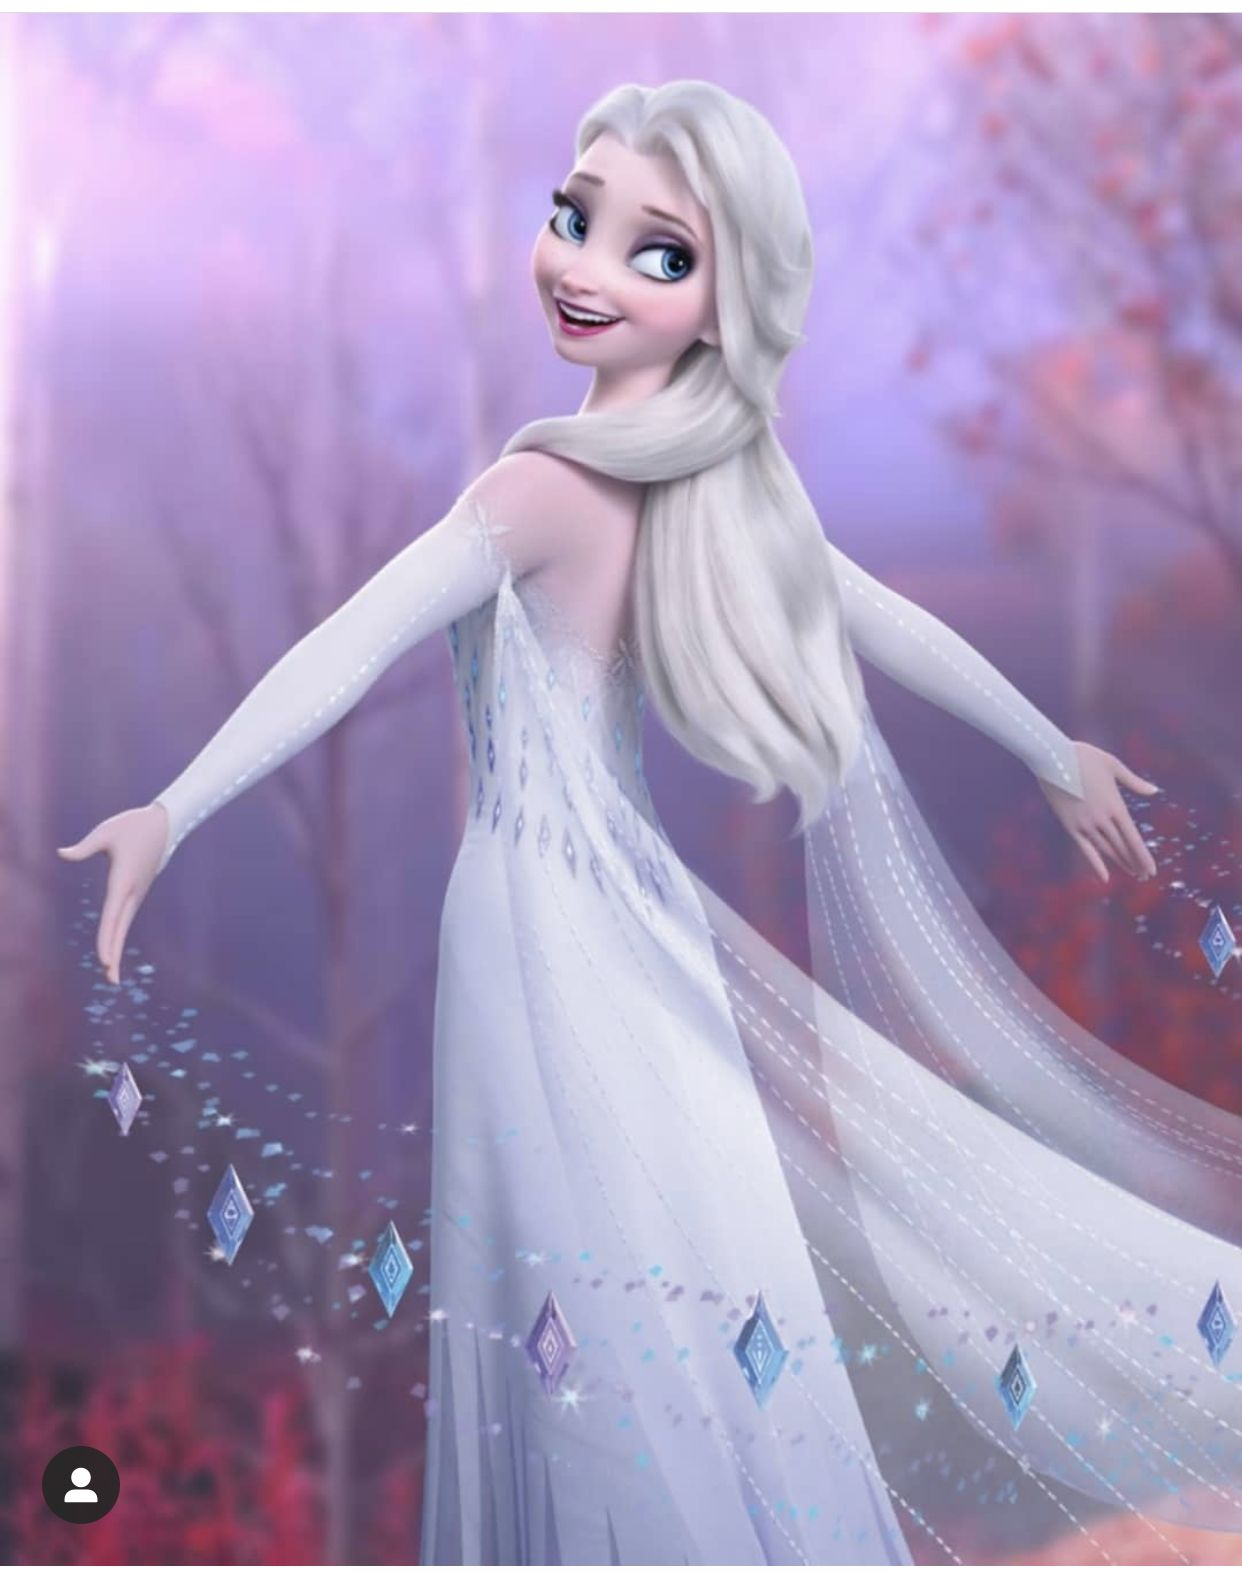 Elsa The Queen And Fifth Spirit Of The Enchanted Forest From Frozen 2 In 2020 Disney Princess Elsa Disney Queens Disney Princess Pictures